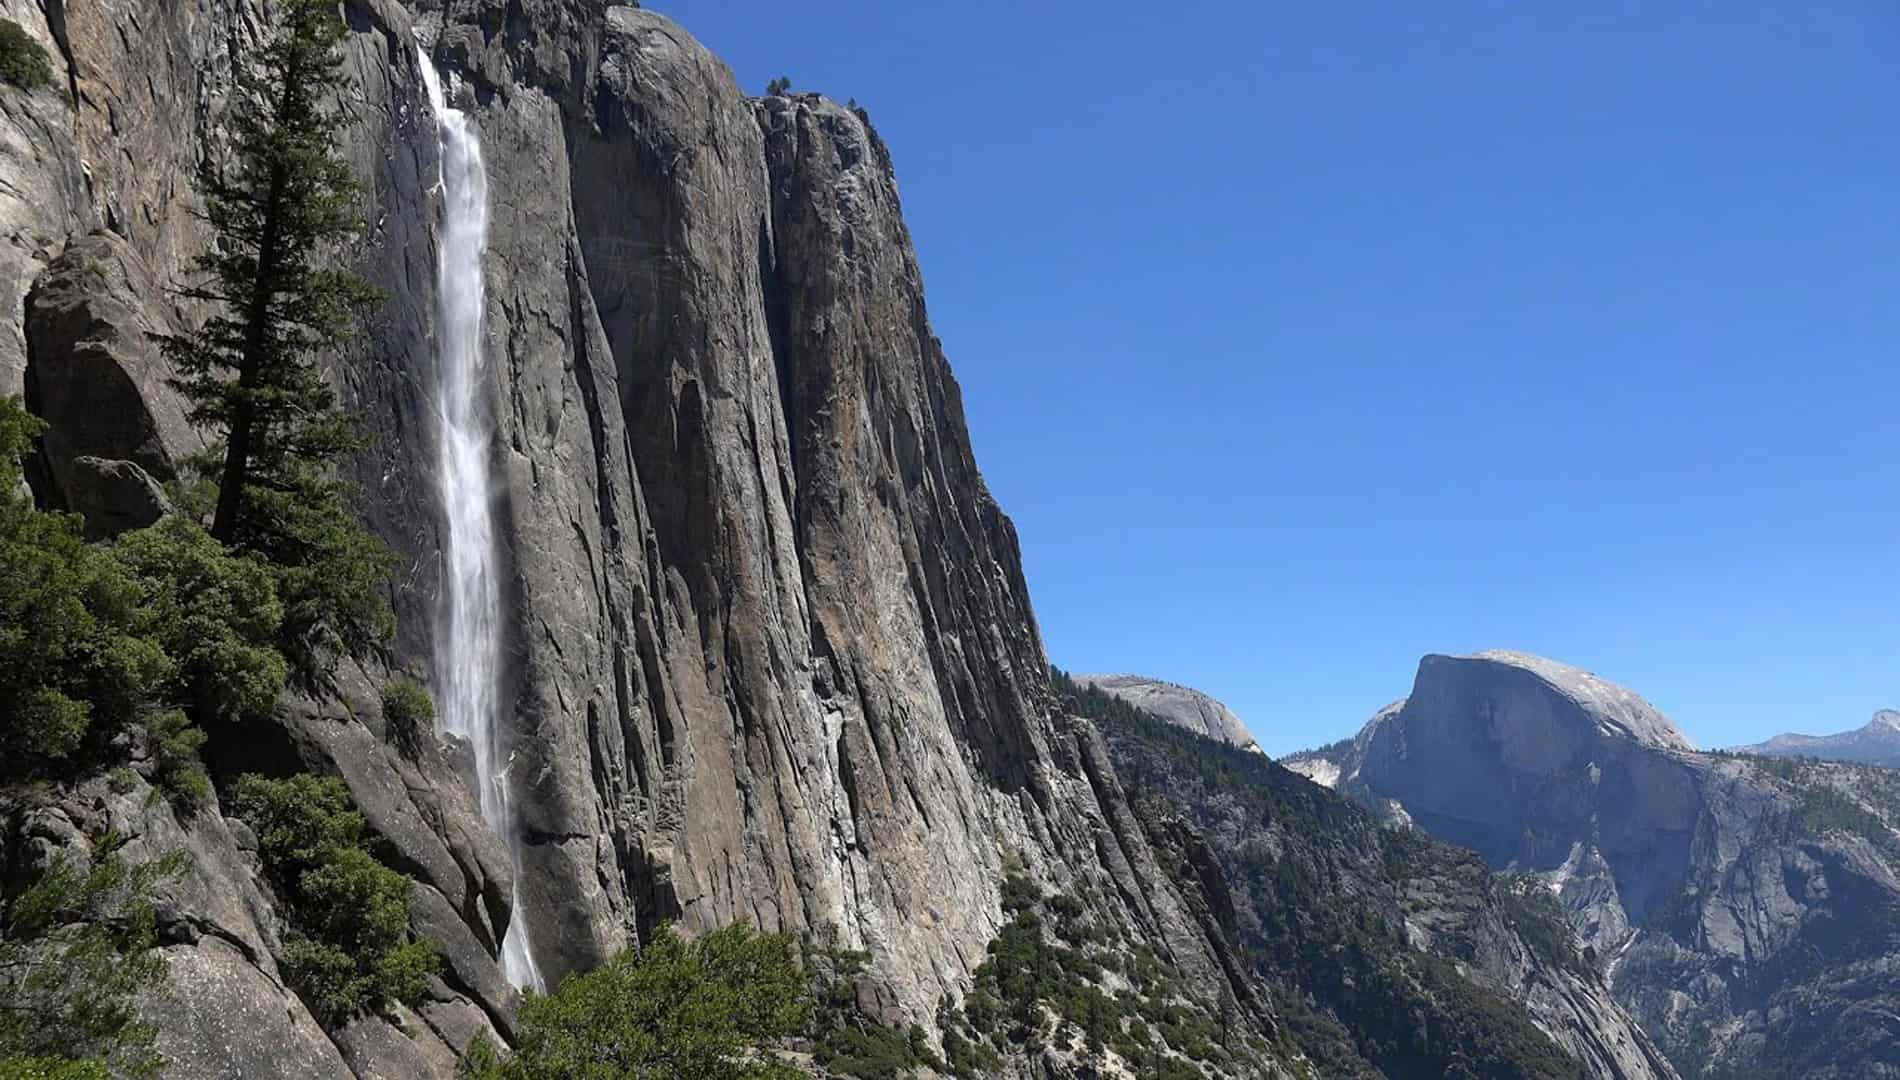 World's Most Famous Yosemite Water Falls In California-USA